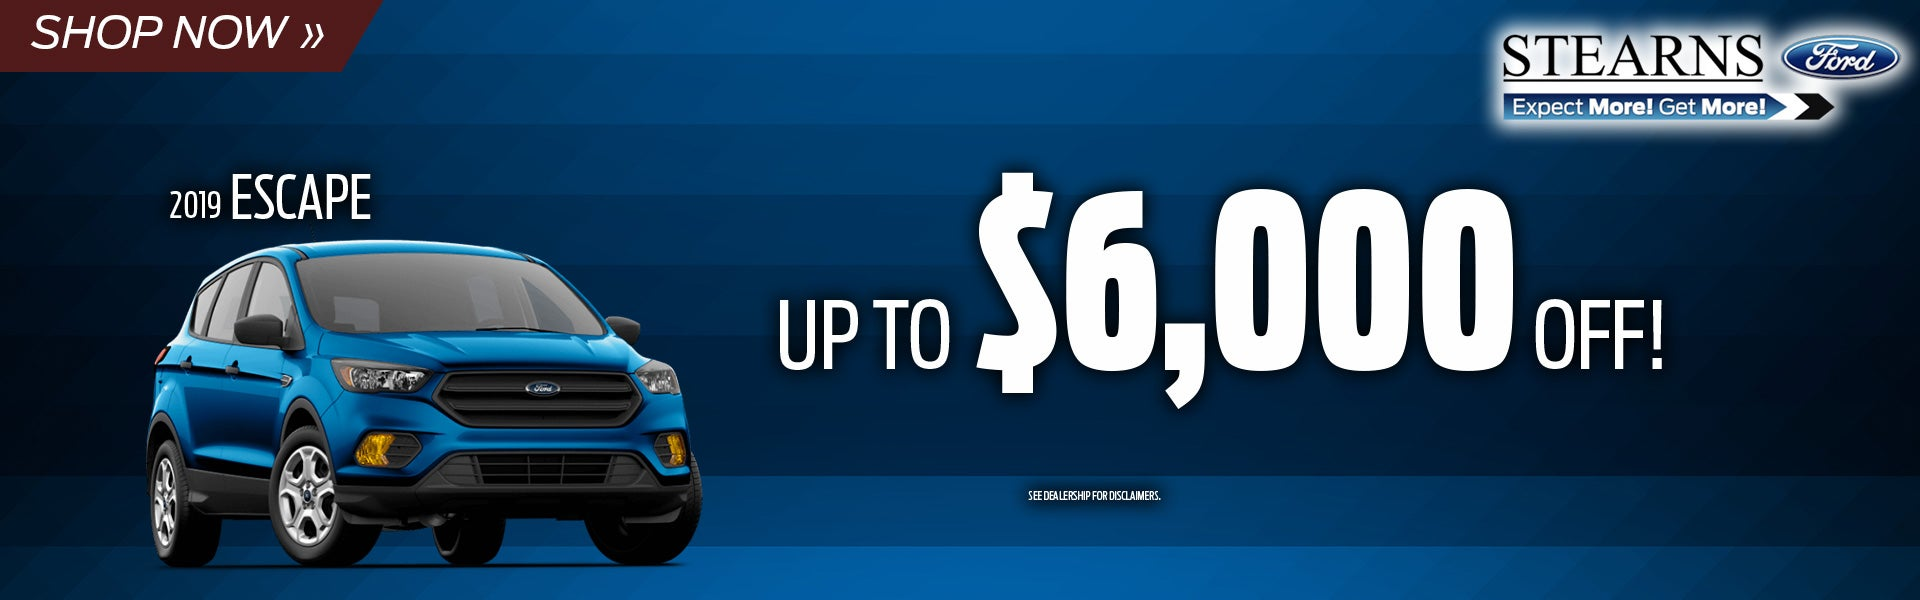 Ford Dealer Inventory Search >> Ford Dealership Burlington Nc Greensboro High Point